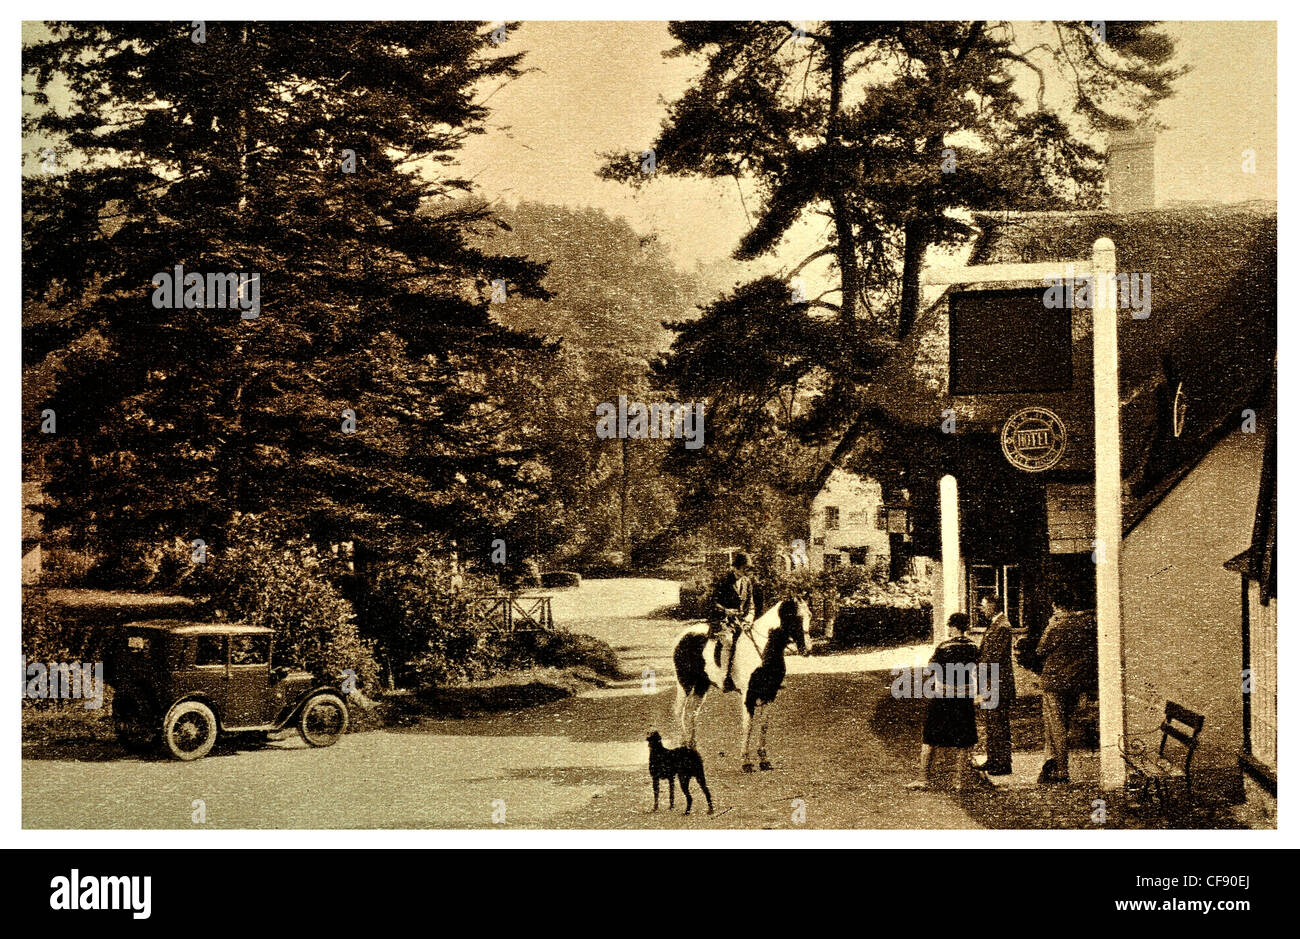 Winsford tavern Inn Pub Public house shop village horse riding dog thatched thatch cottage Somerset South West England - Stock Image